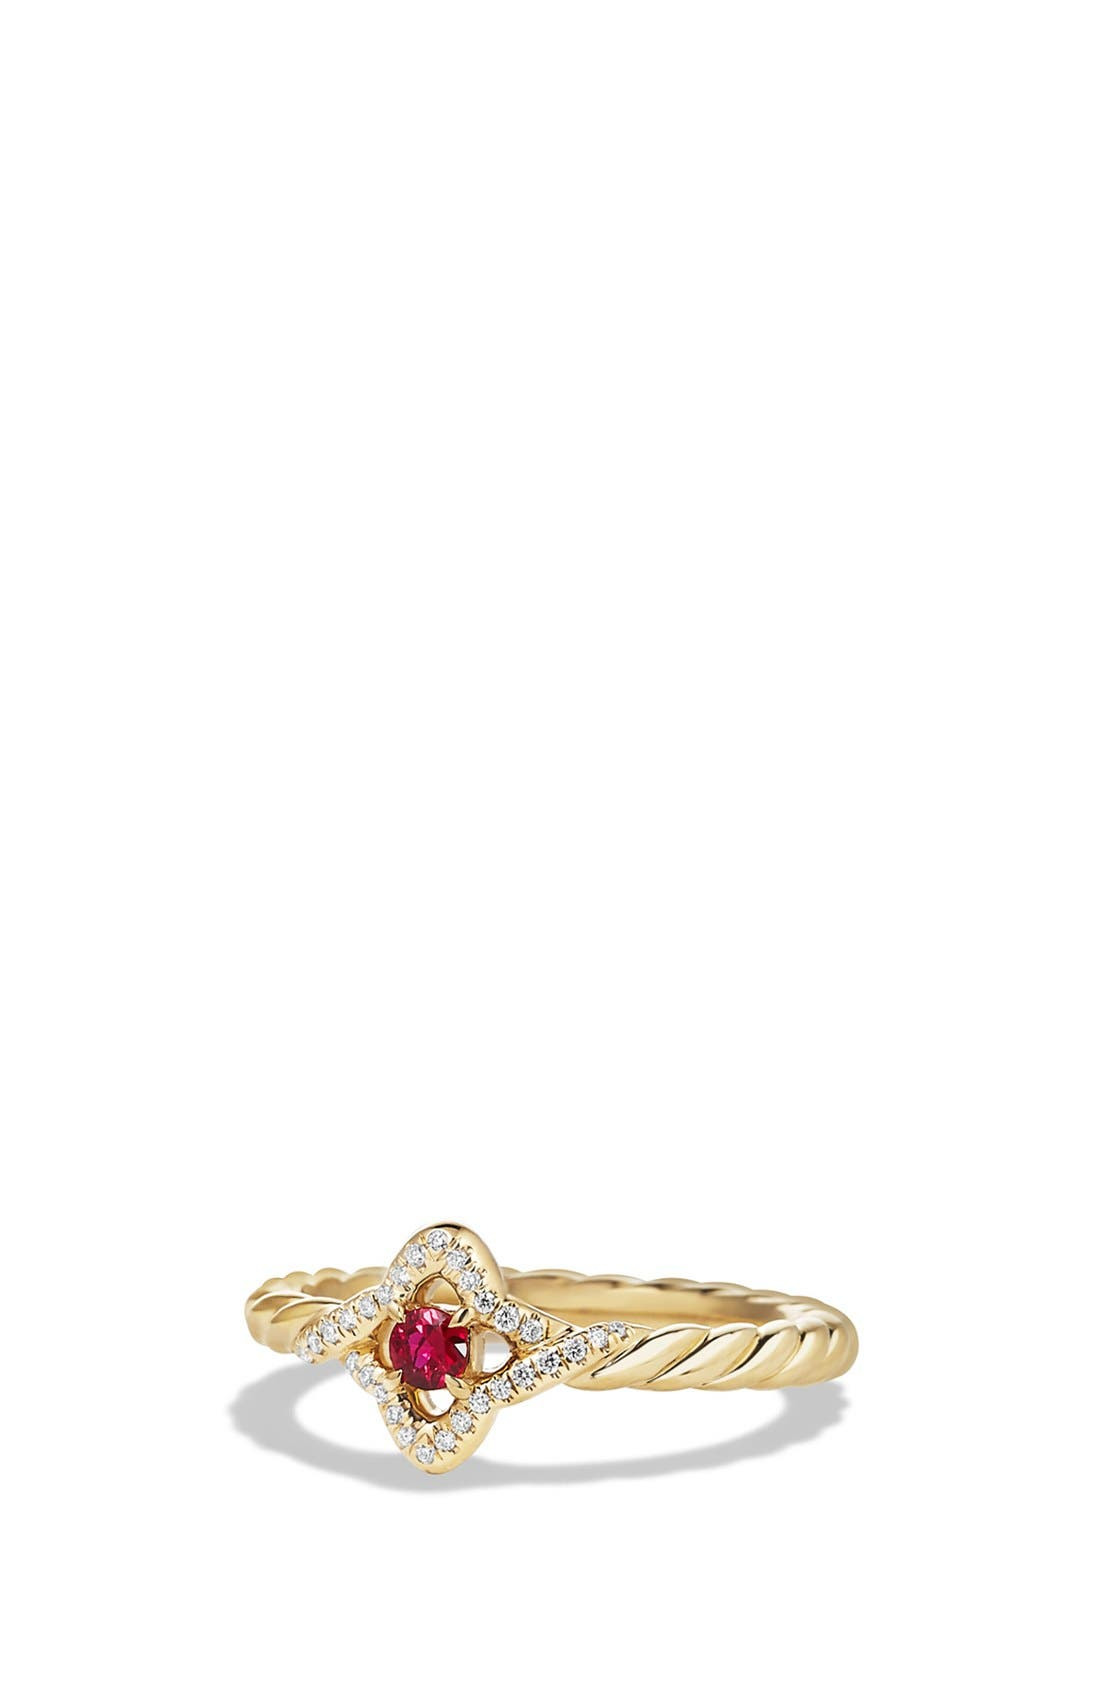 David Yurman 'Venetial Quatrefoil' Ring in Gold